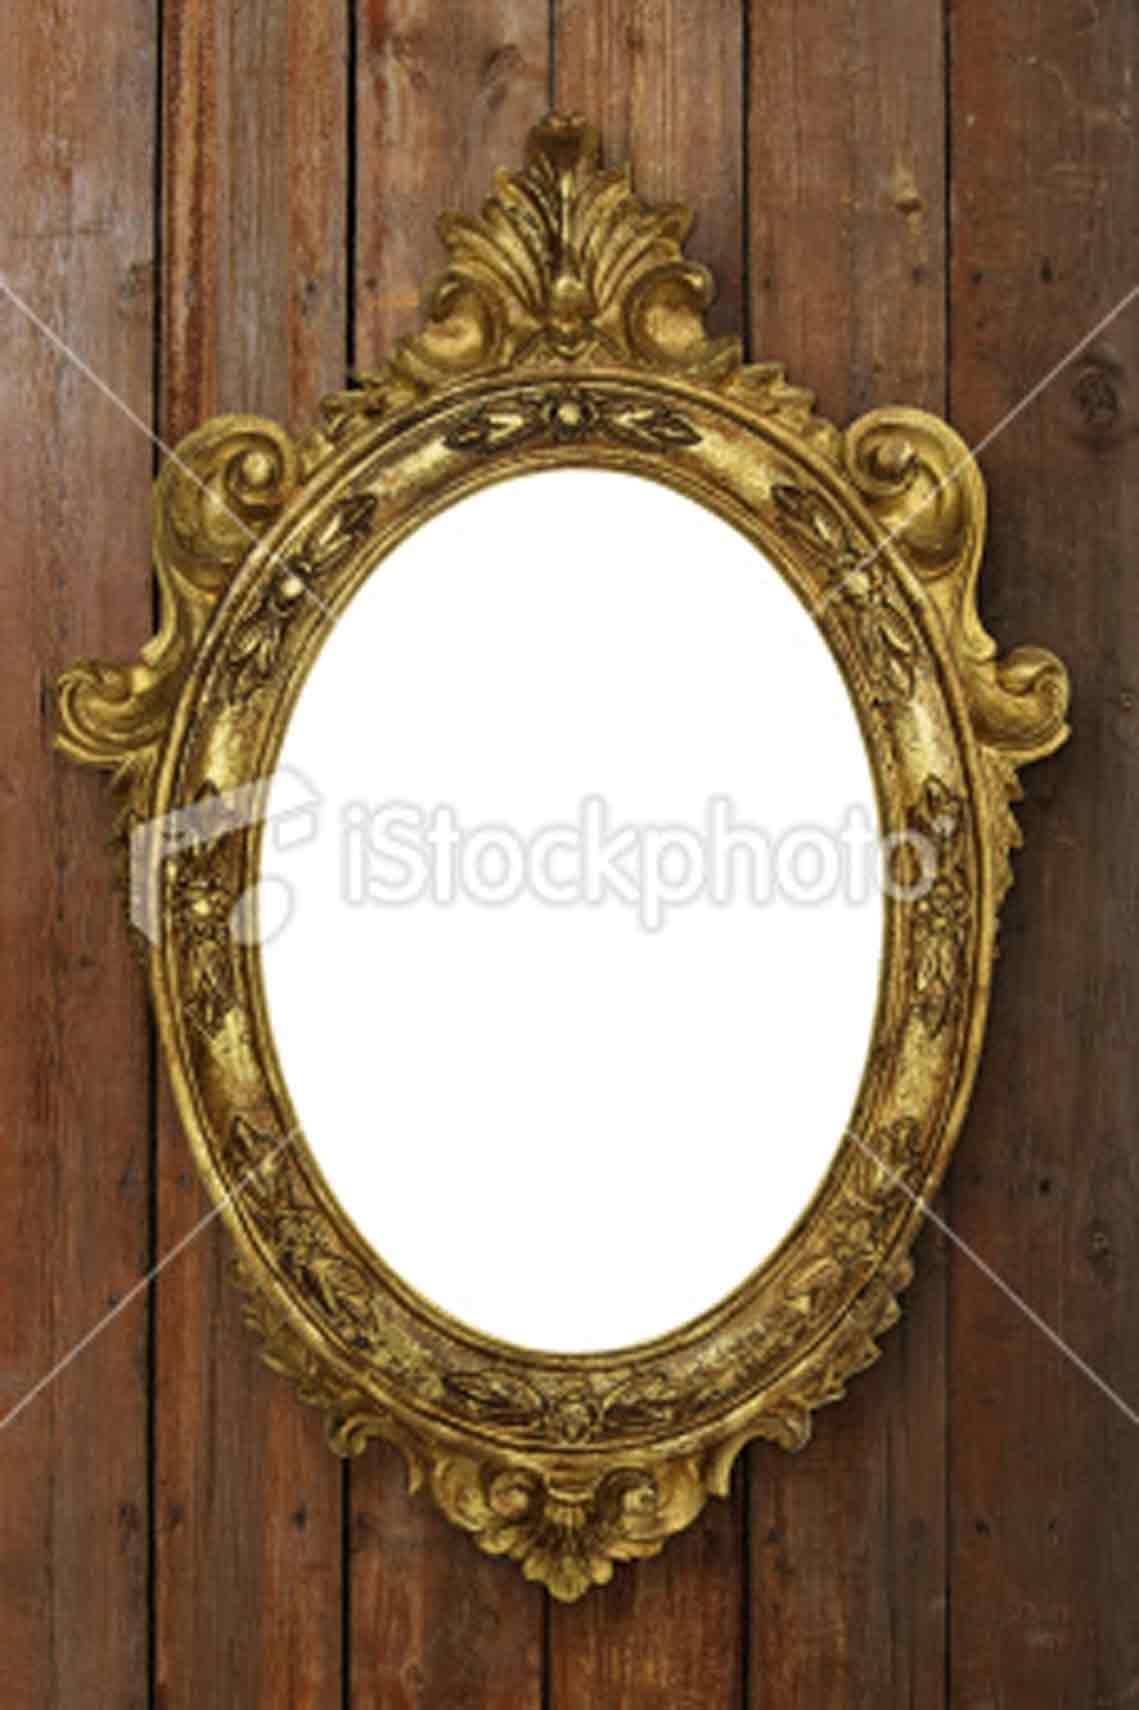 Home Decor: Use Antique Style Mirrors In Wall Decoration Of Your in Old Style Mirrors (Image 19 of 25)